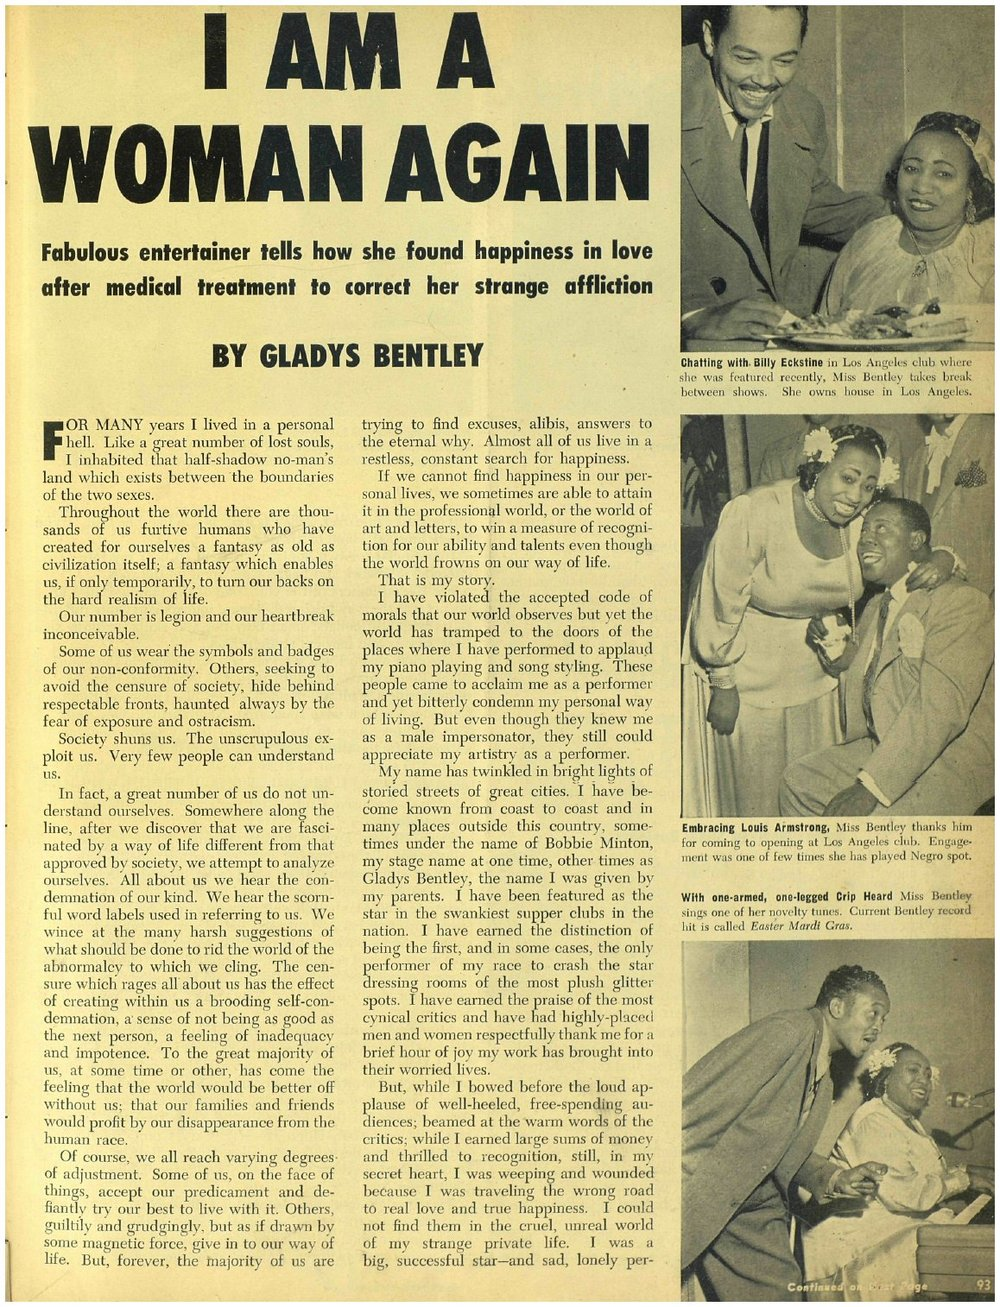 photgraph of the infamous  Ebony  article from 1952 where Bentley claimed to have turned straight due to hormone treatments. this and the rest of the article can be read  here .